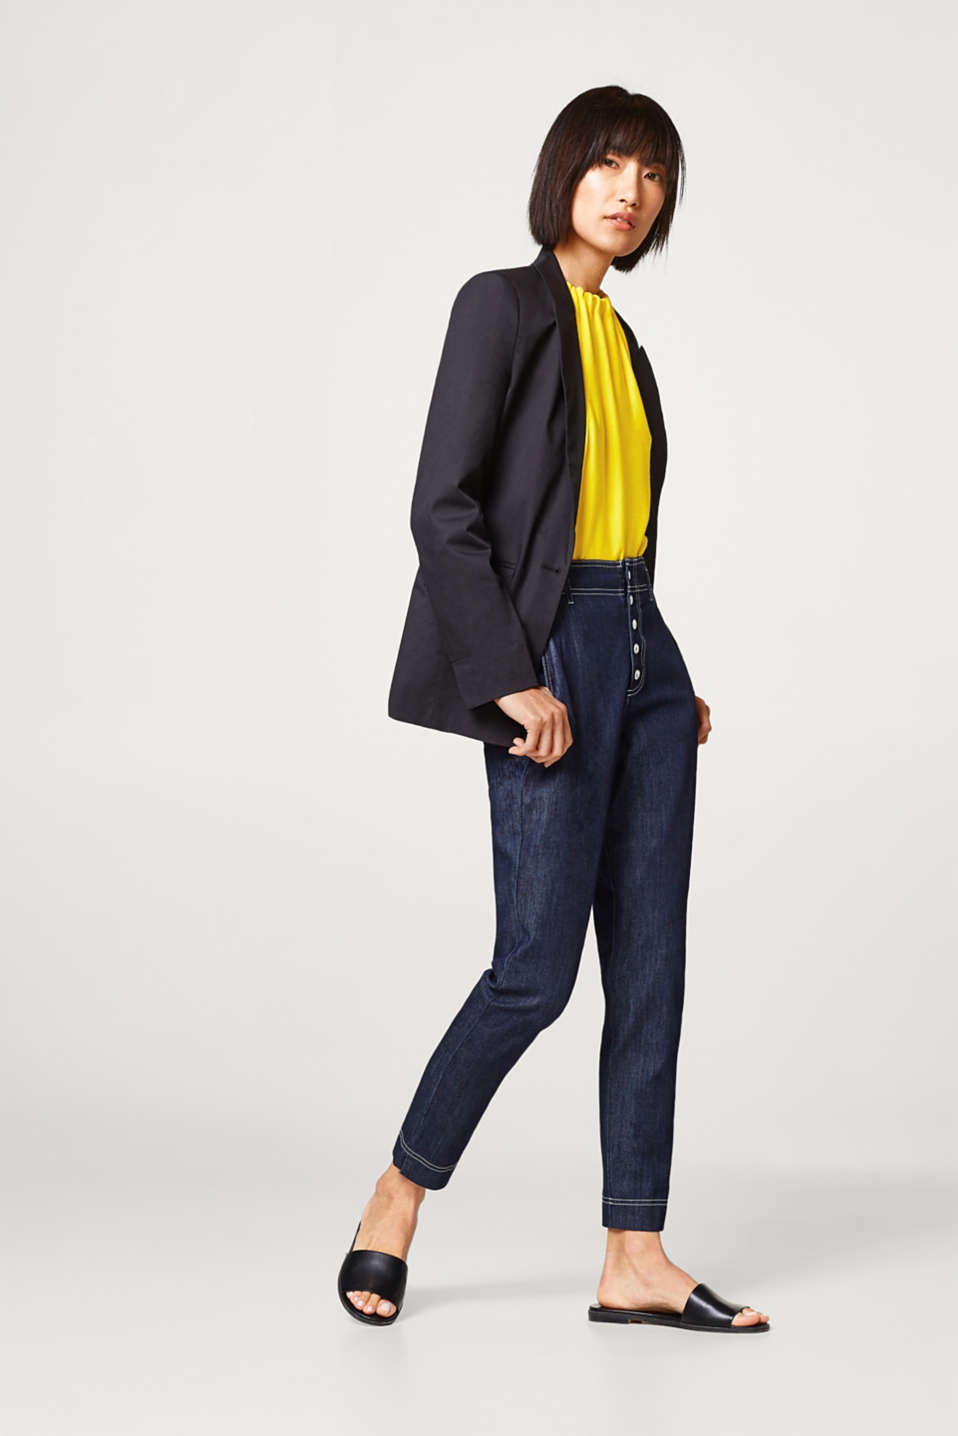 Straight-fit one-button blazer in cotton- stretch